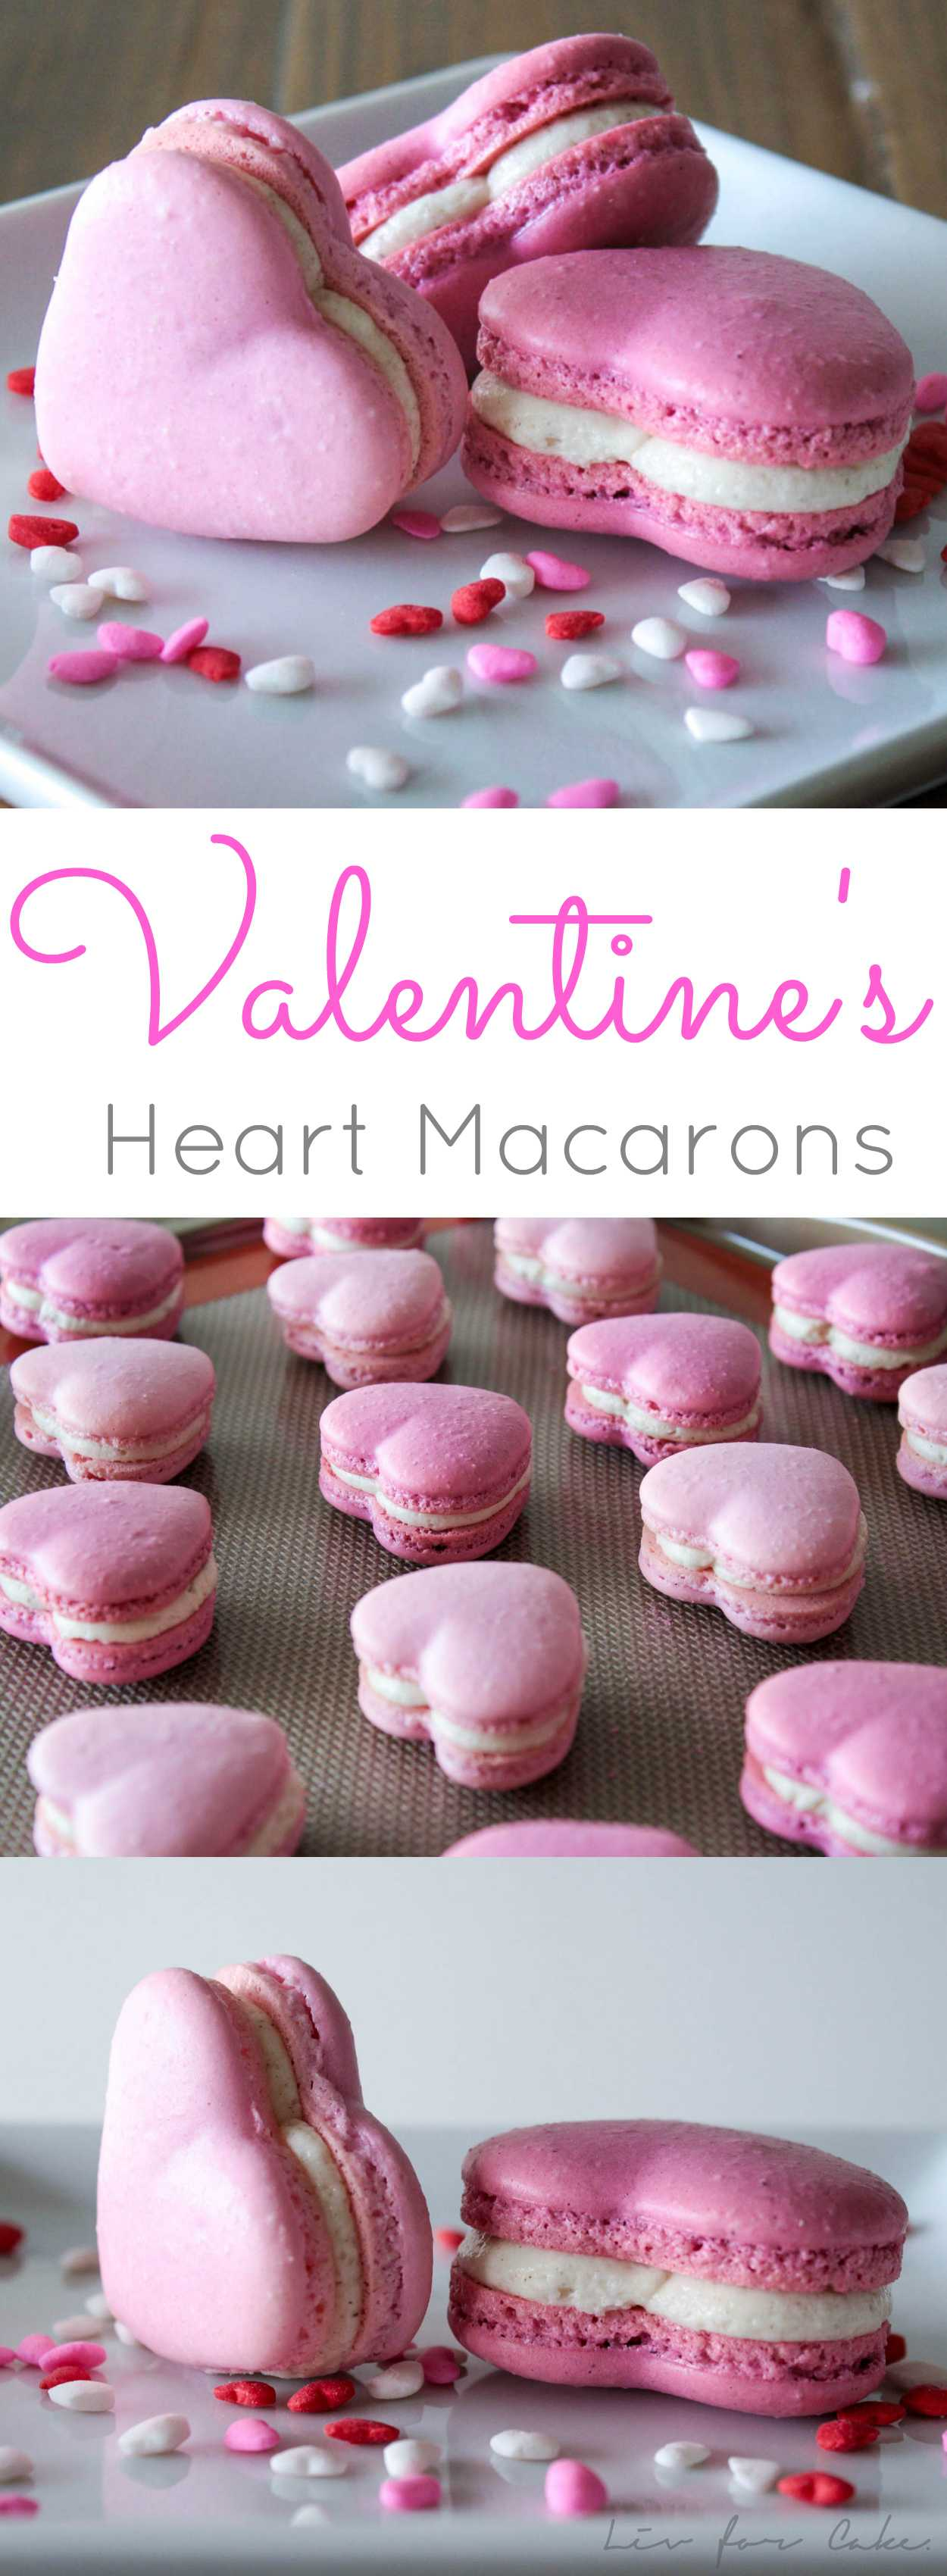 These cinnamon spiced heart macarons are the perfect way to celebrate Valentine's Day! | livforcake.com